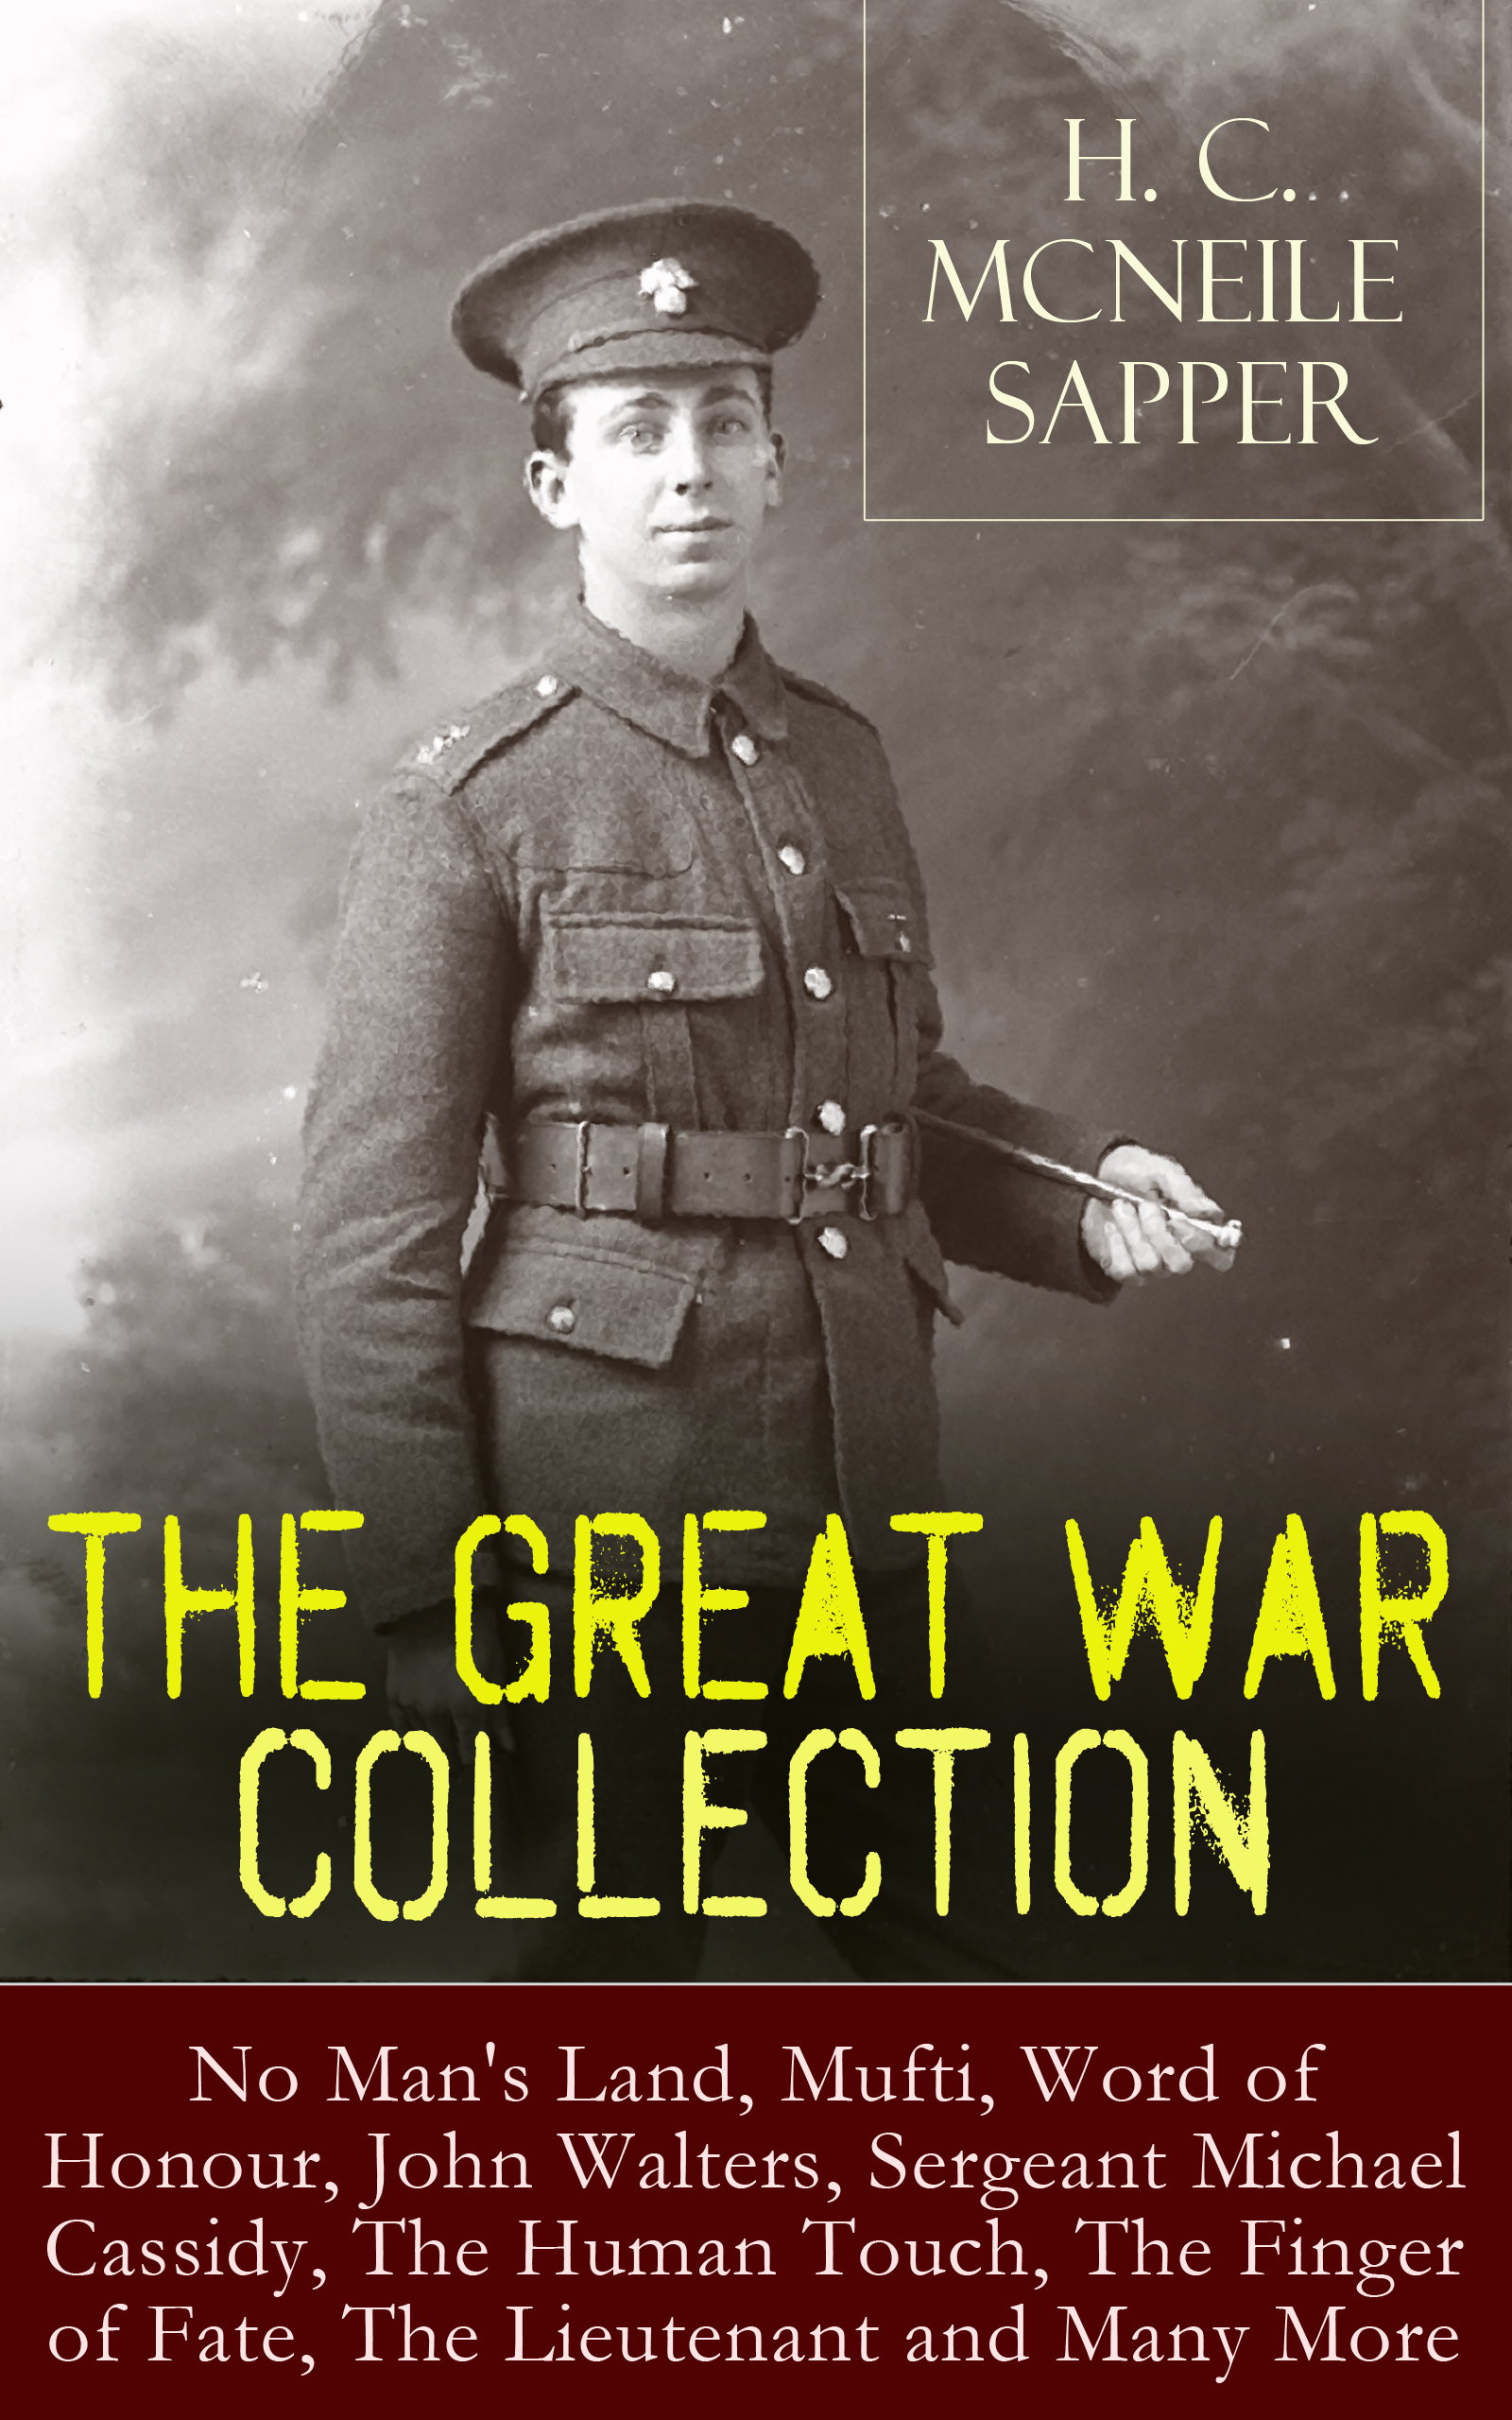 цена H. C. McNeile H. C. McNeile - The Great War Collection: No Man's Land, Mufti, Word of Honour, John Walters, Sergeant Michael Cassidy, The Human Touch, The Finger of Fate, The Lieutenant and Many More онлайн в 2017 году